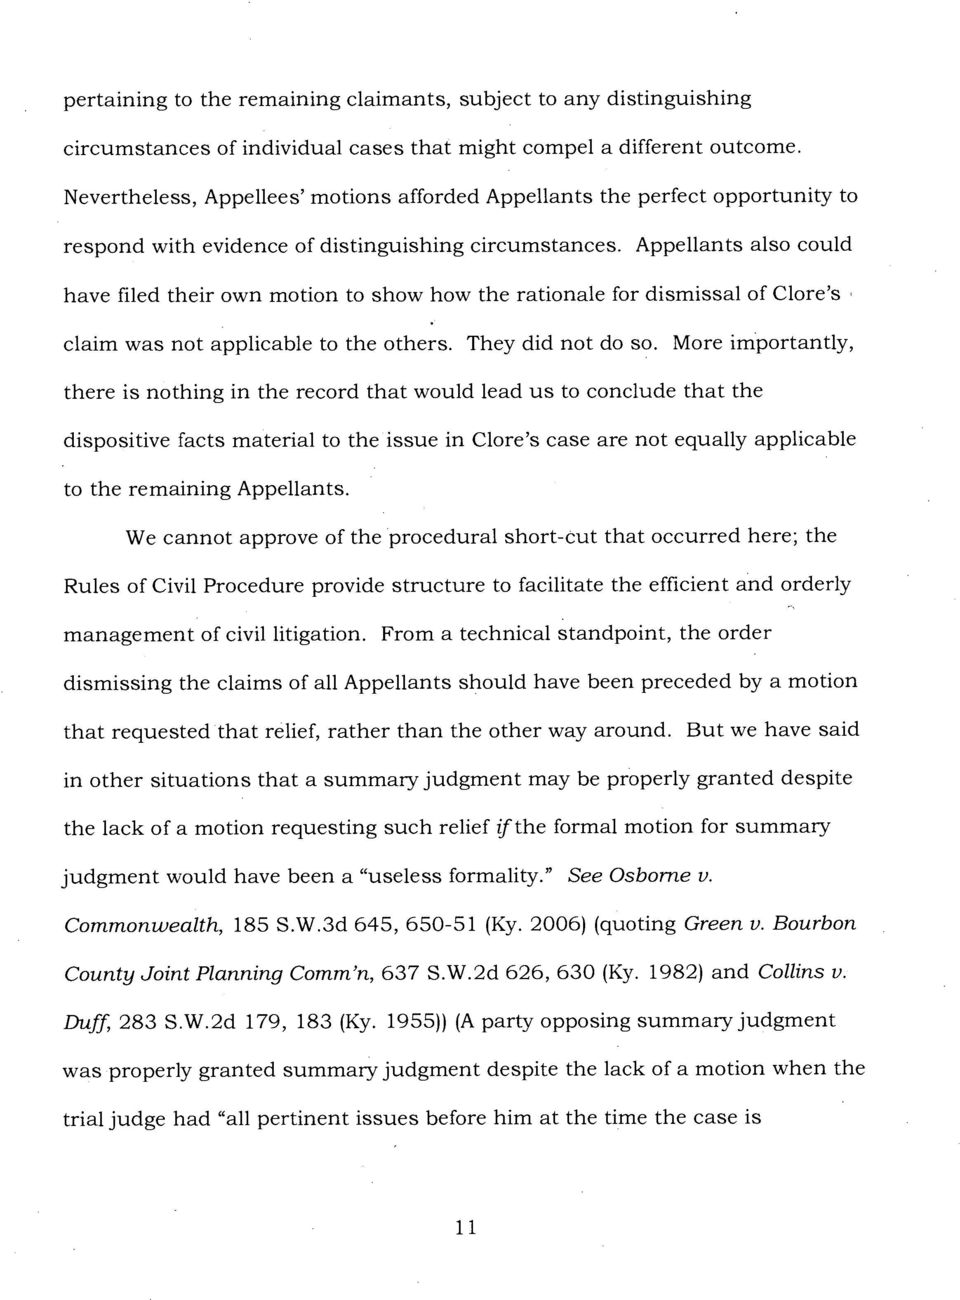 Appellants also could have filed their own motion to show how the rationale for dismissal of Clore's claim was not applicable to the others. They did not do so.